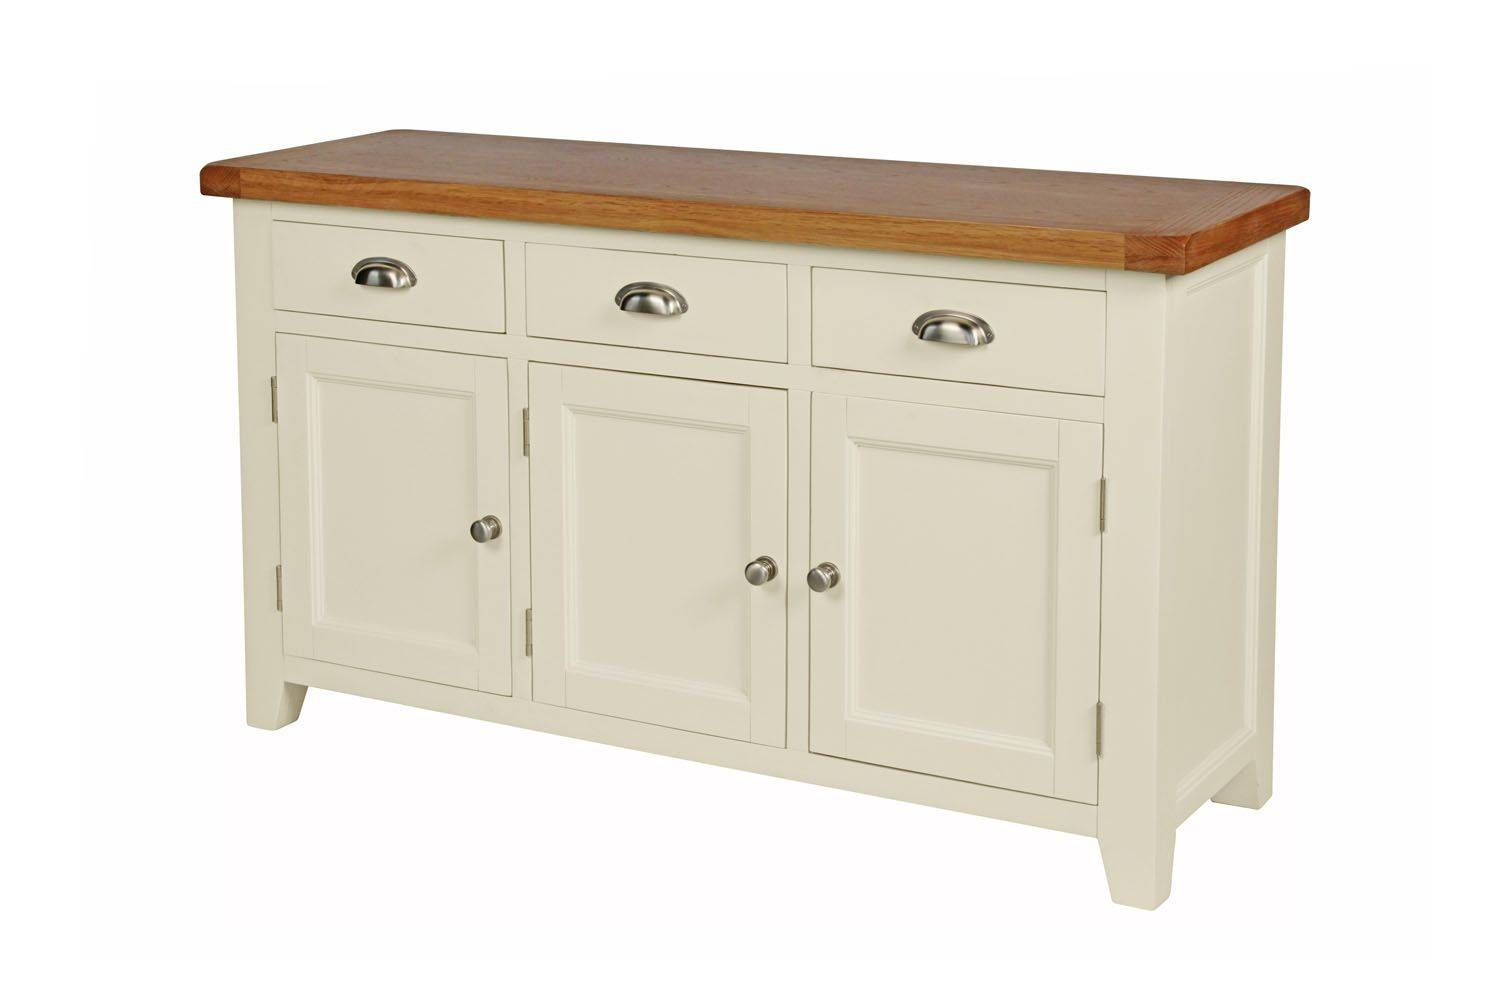 Country Cottage 140Cm Cream Painted Large Oak Sideboard intended for Cream and Brown Sideboards (Image 1 of 15)